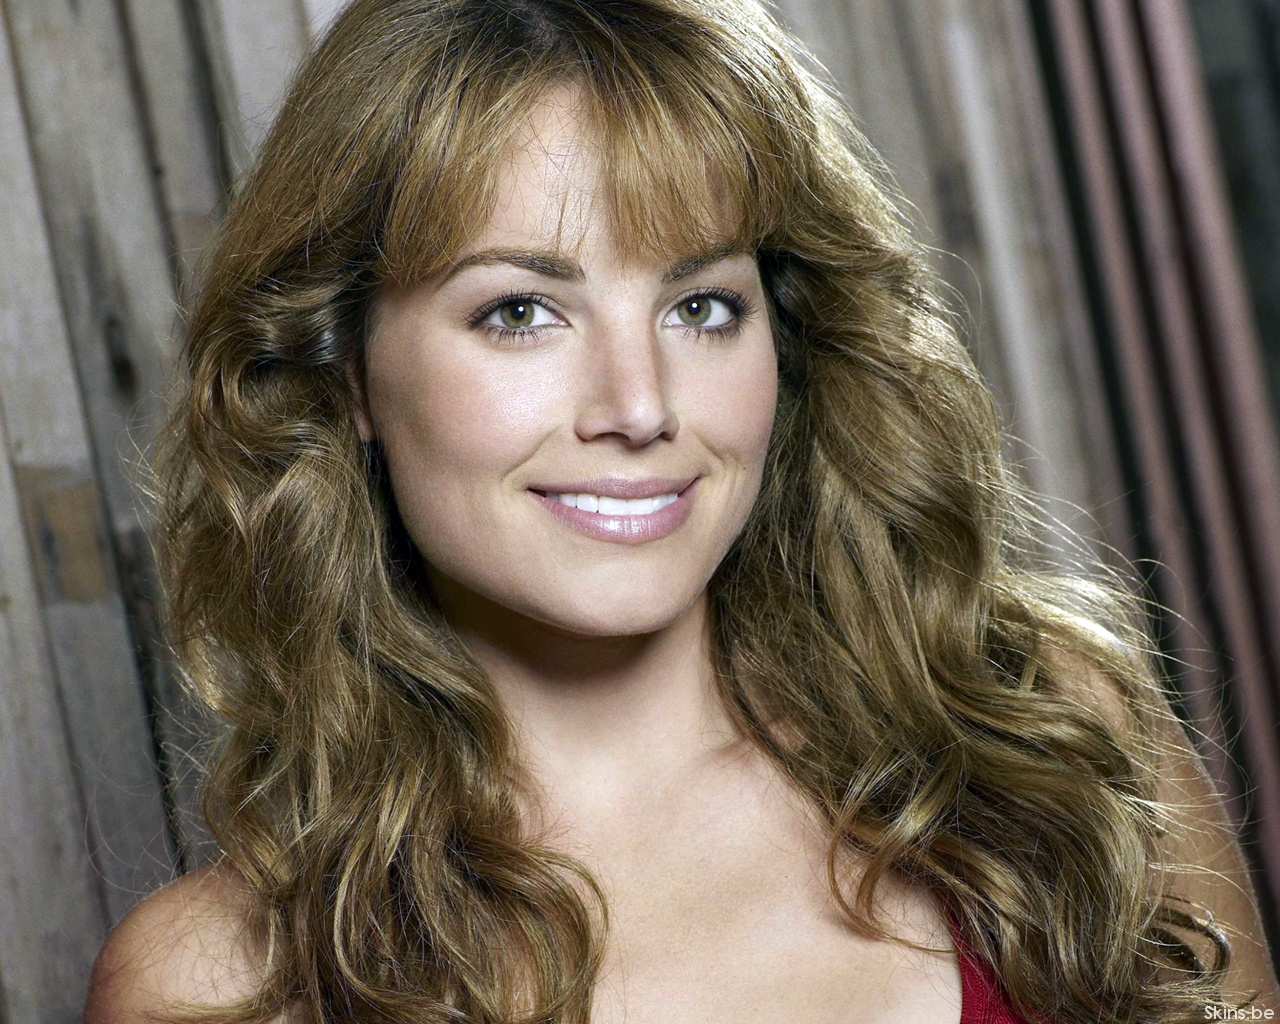 erica durance computer wallpaper - photo #19